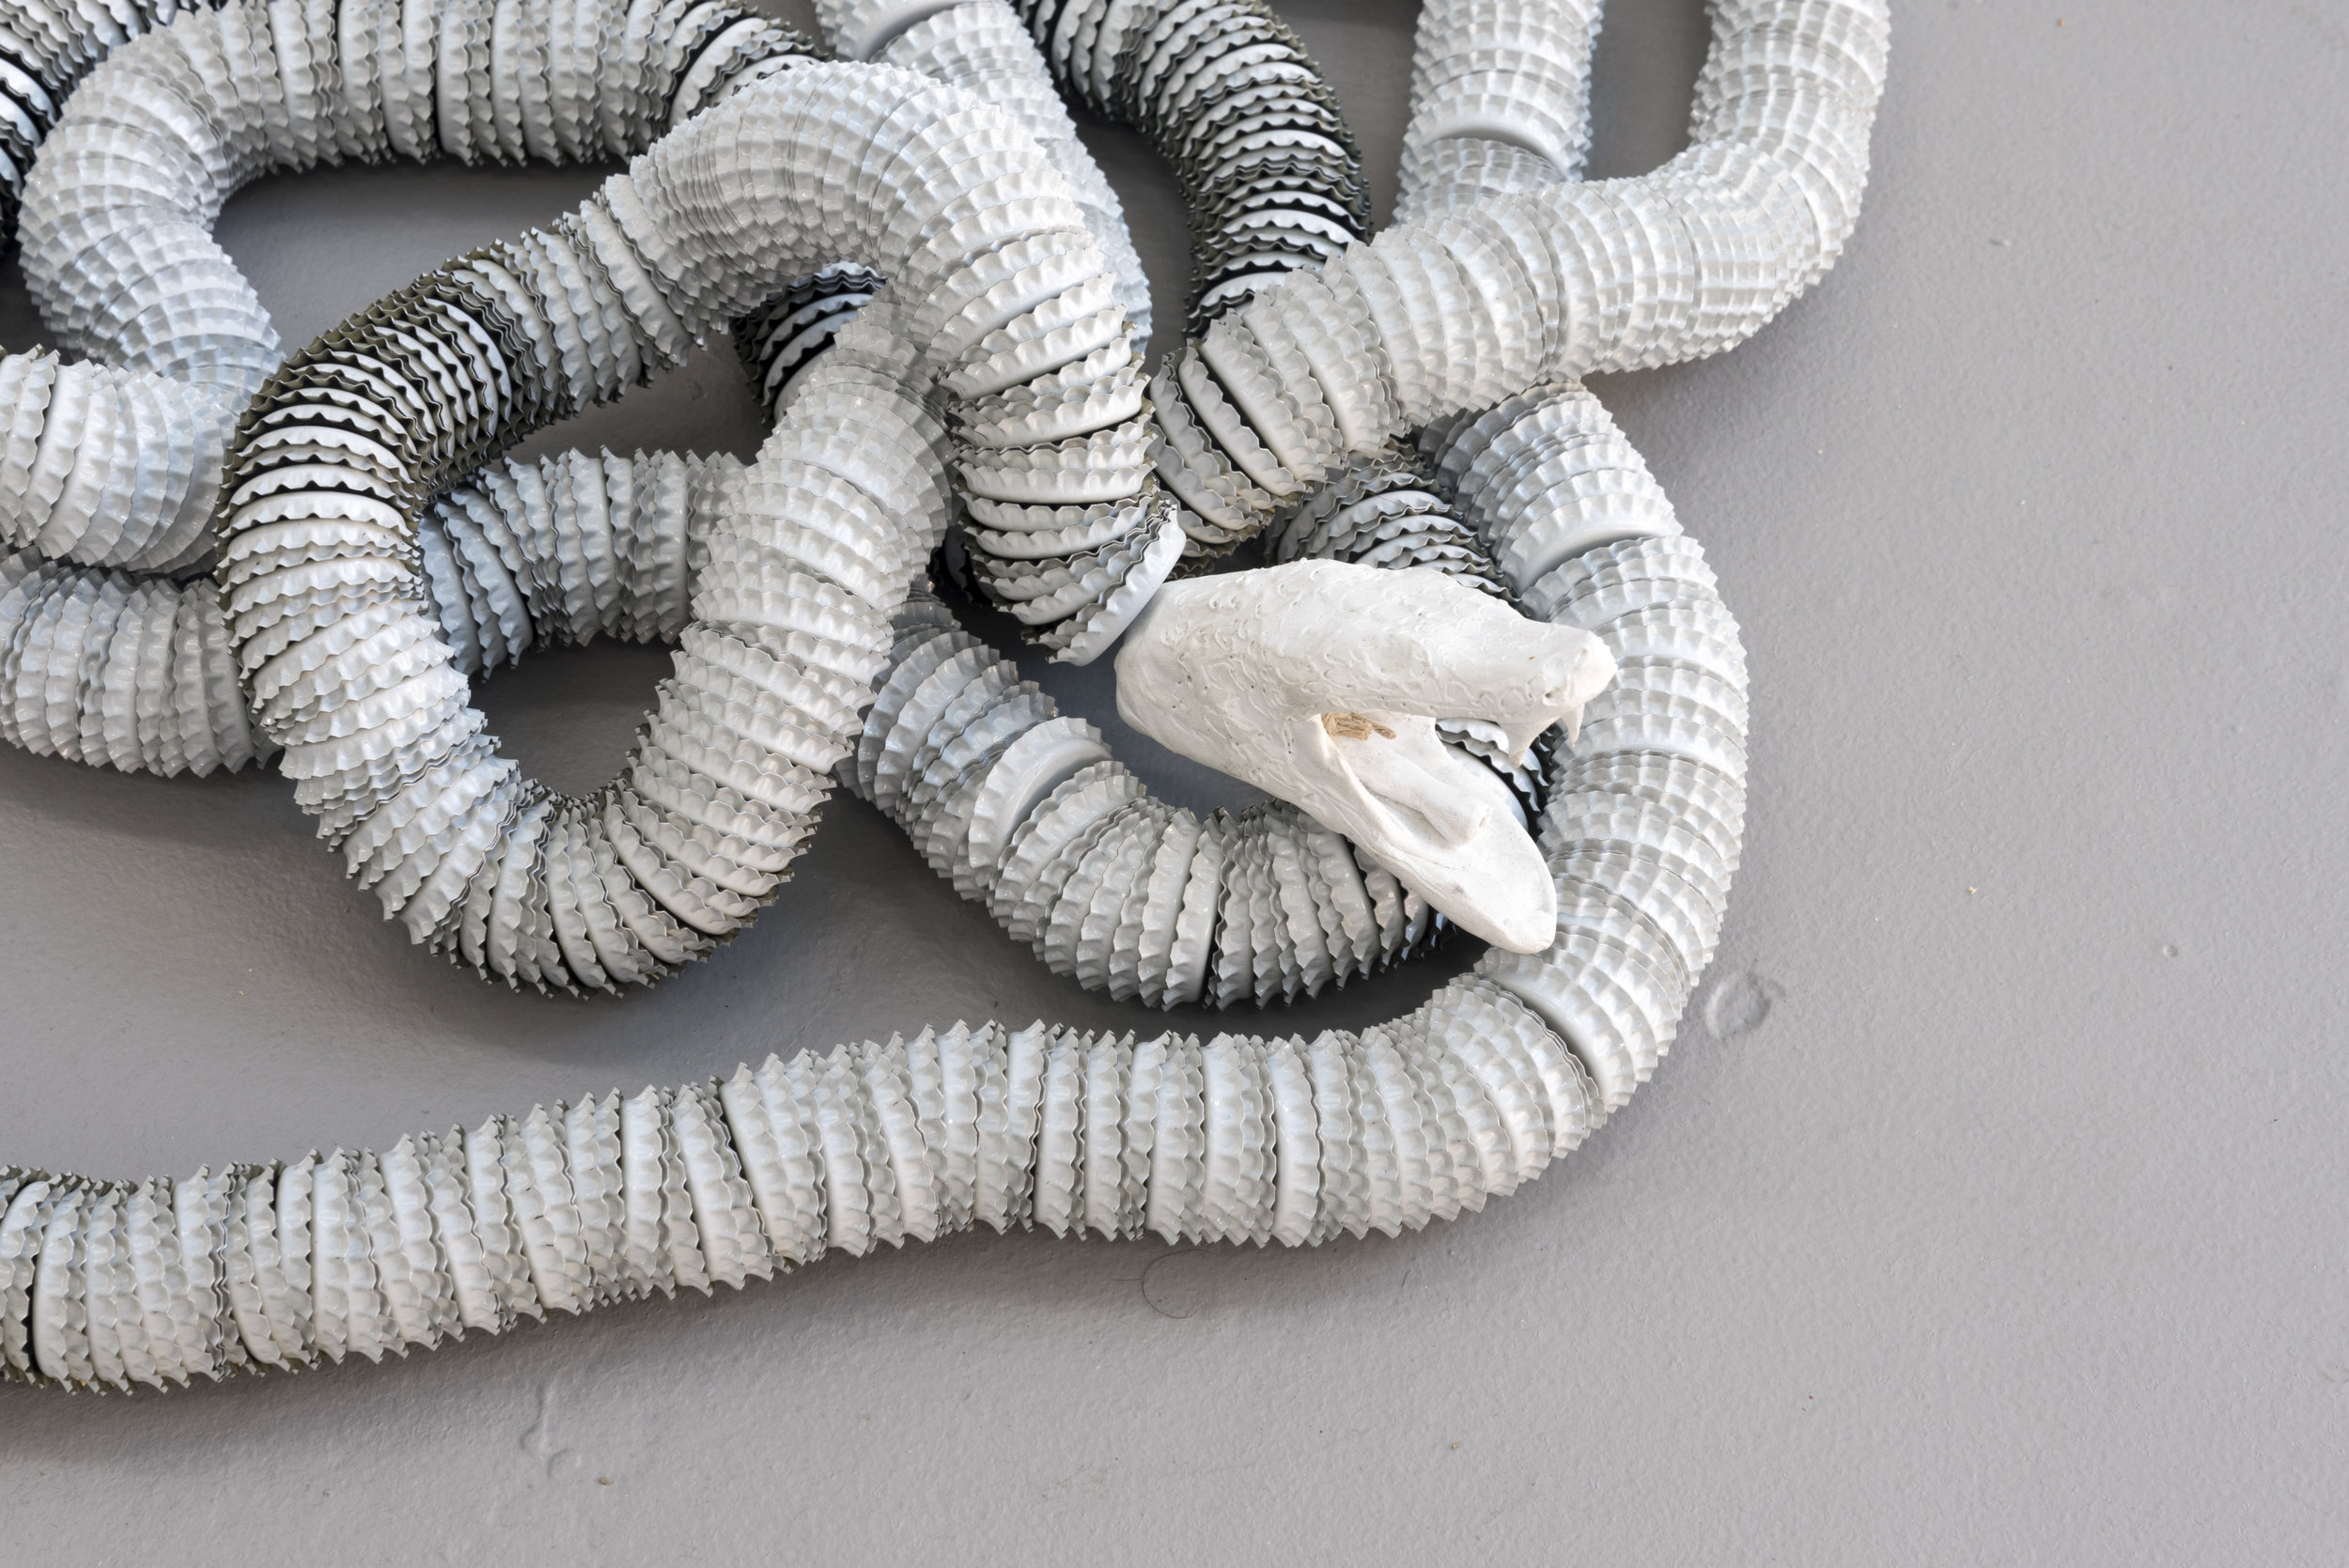 Preparing for the Unknown (Dream Snake),  2019 polymer clay, hemp string, bottle caps 20 feet long, installation dimensions variable